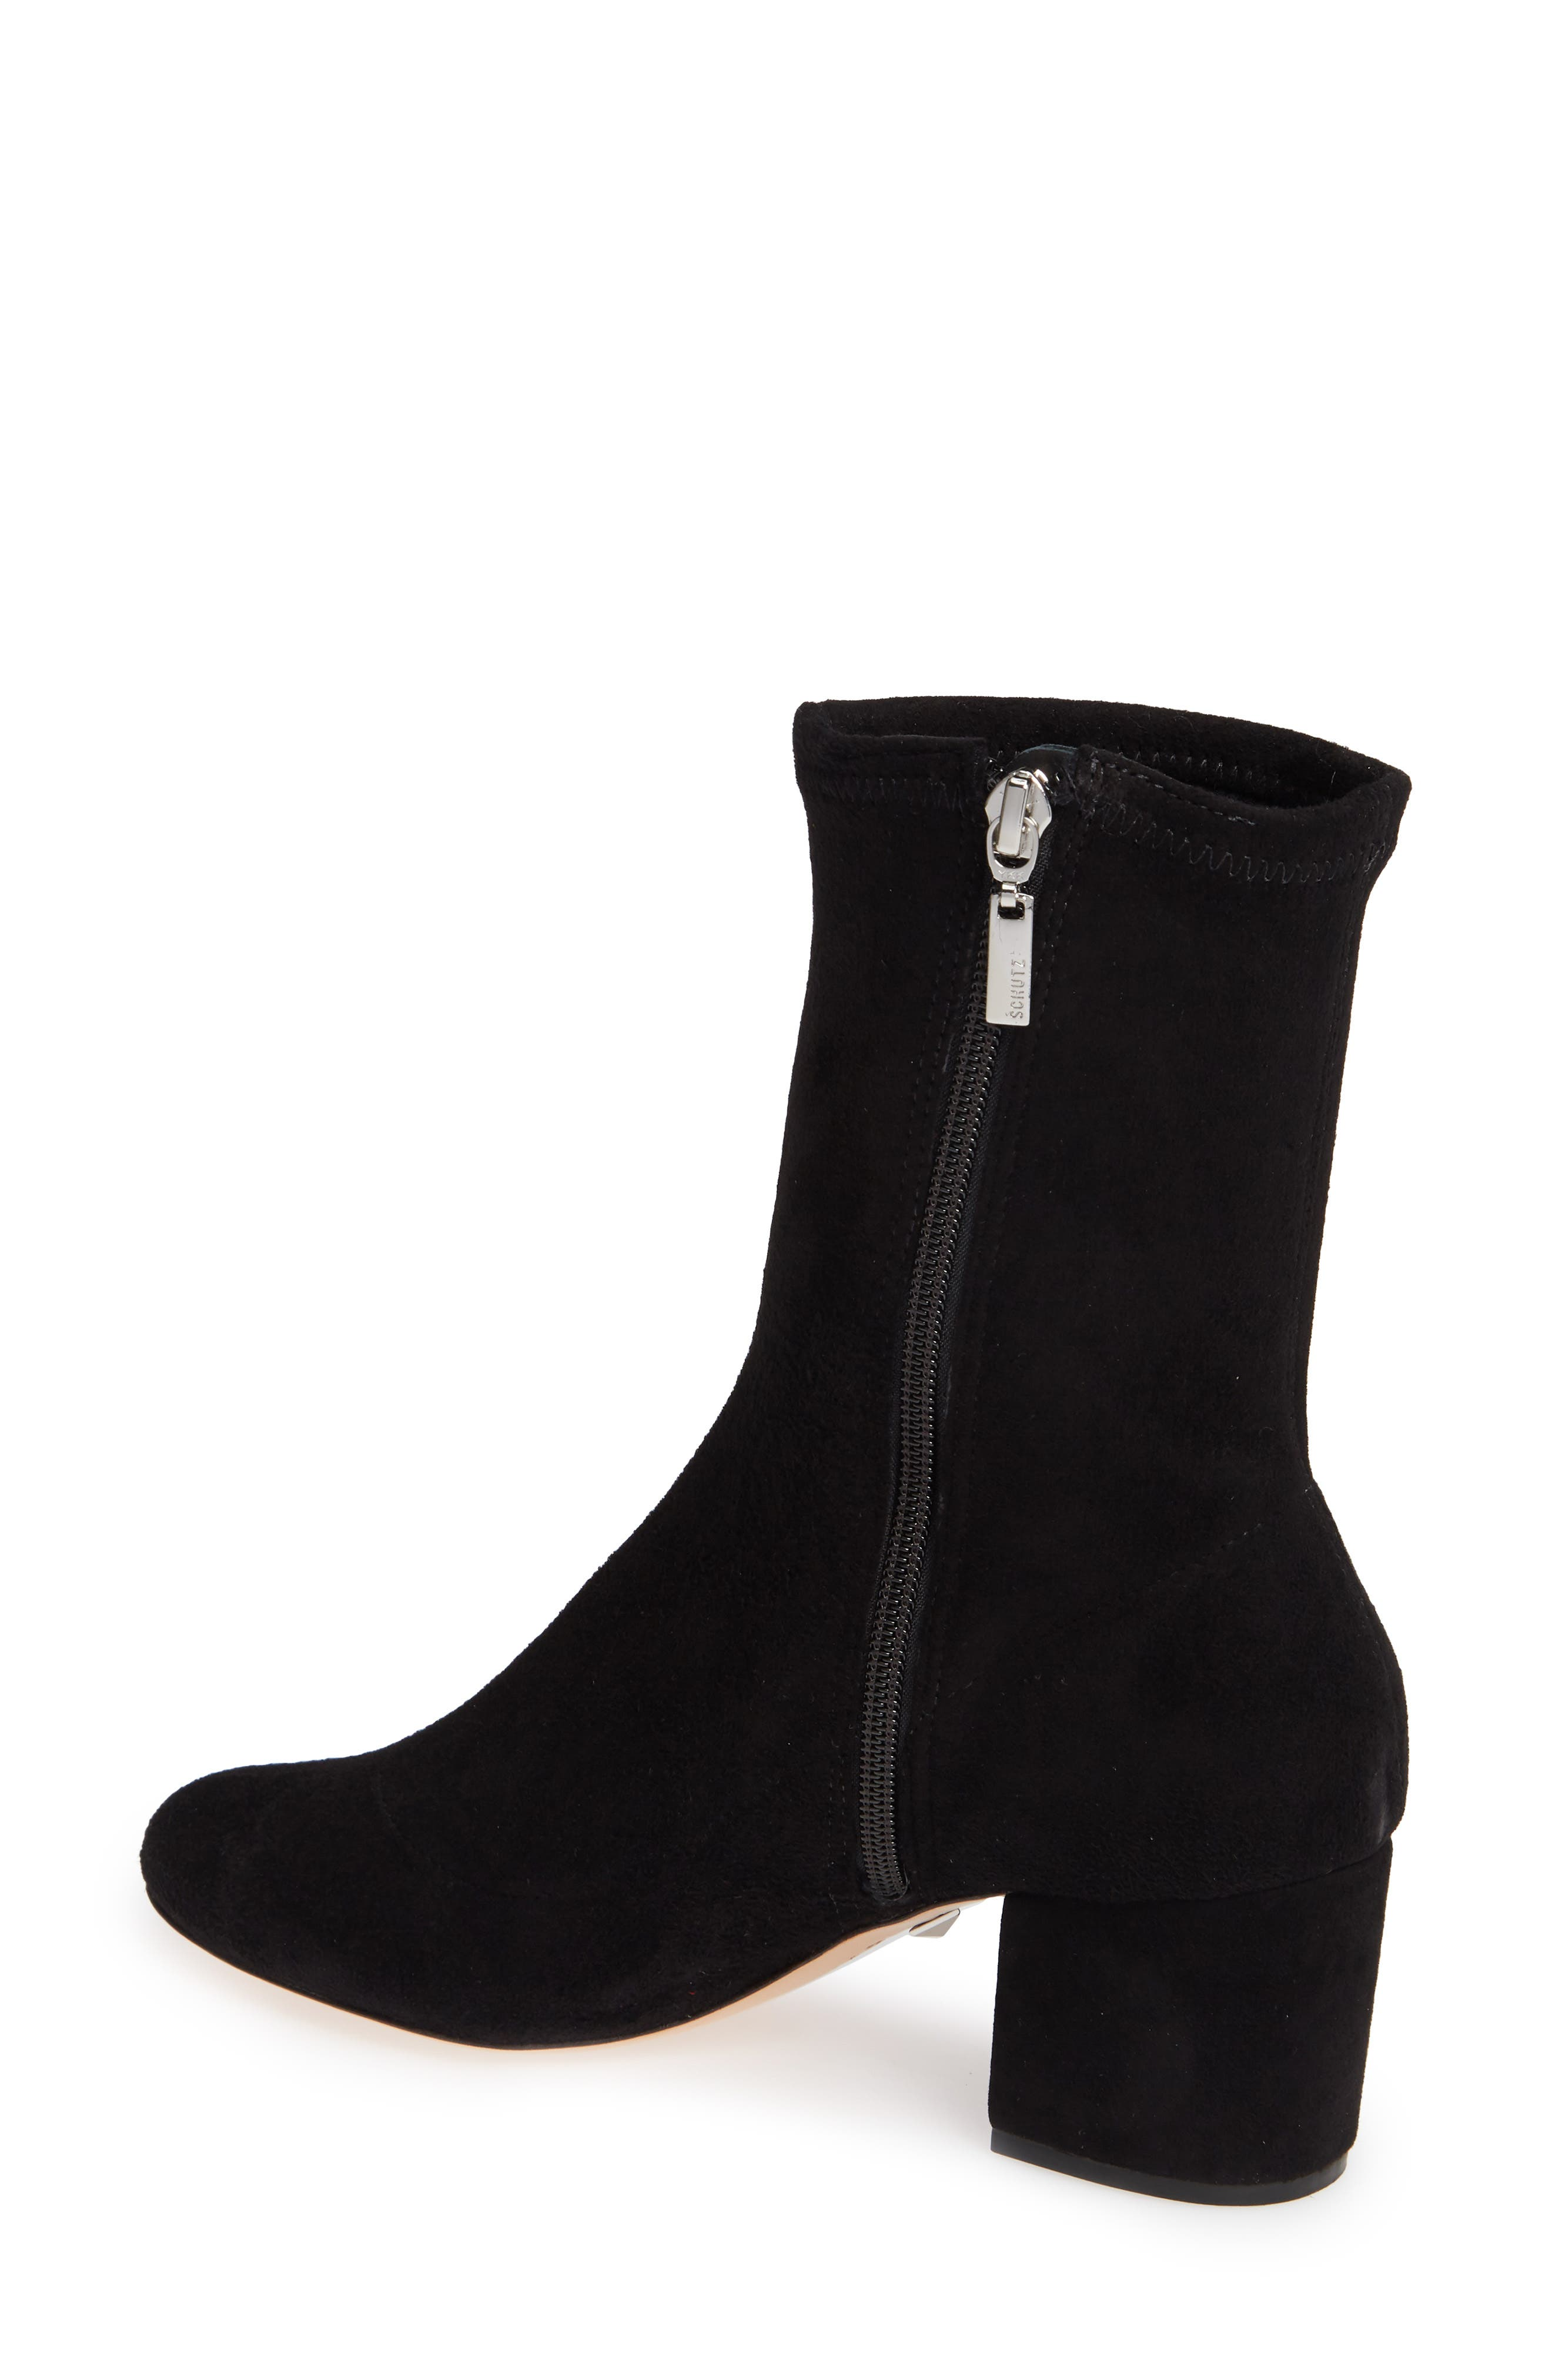 SCHUTZ,                             Lupe Stretch Bootie,                             Alternate thumbnail 2, color,                             001